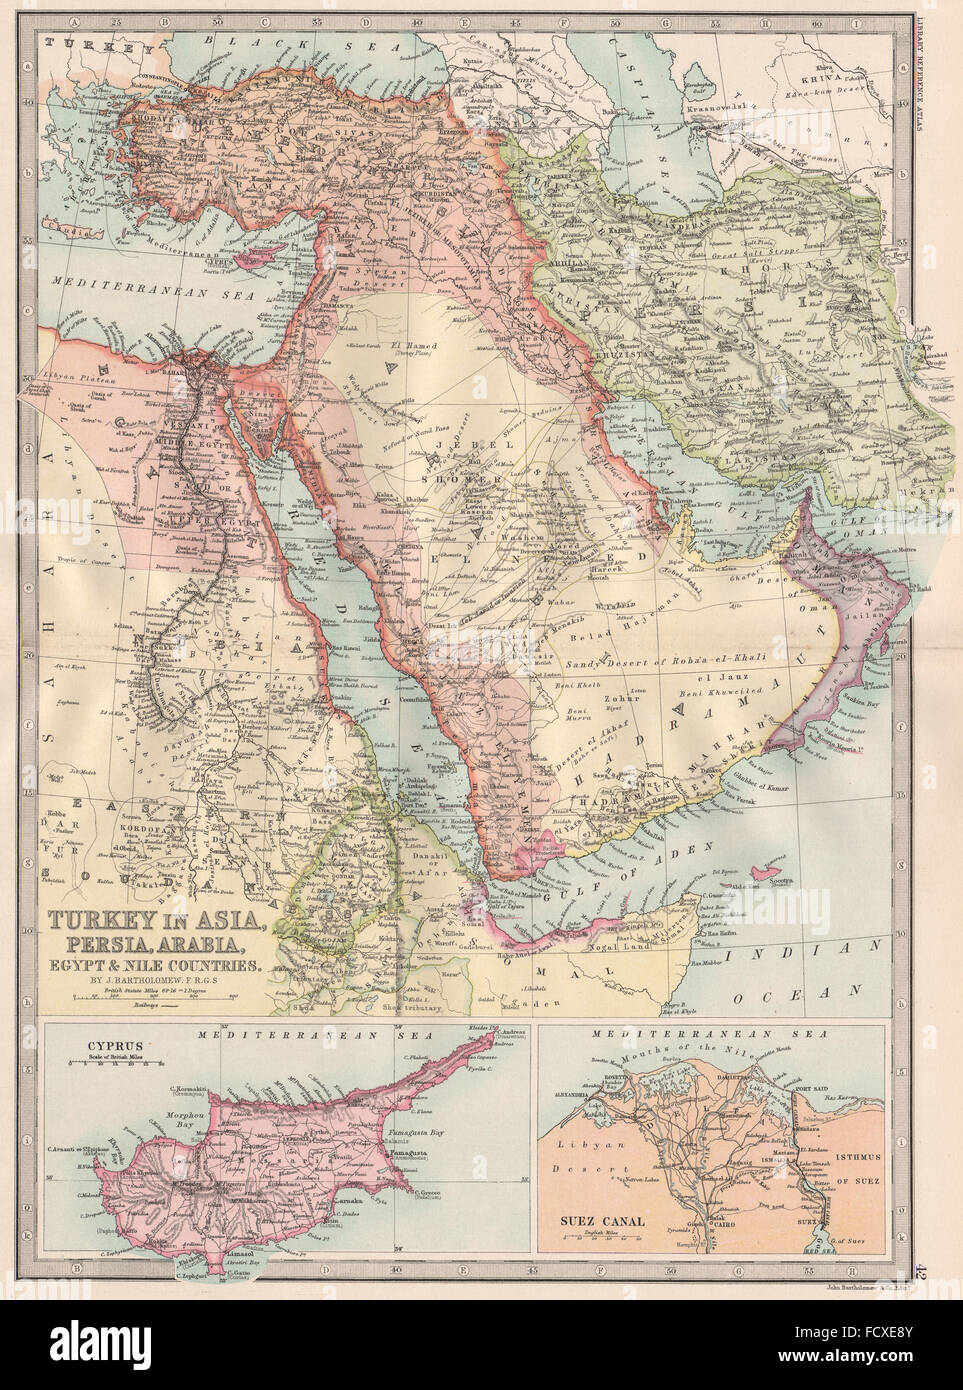 Middle east turkey asia persia iran arabia egypt cyprus suez middle east turkey asia persia iran arabia egypt cyprus suez canal 1890 map gumiabroncs Gallery